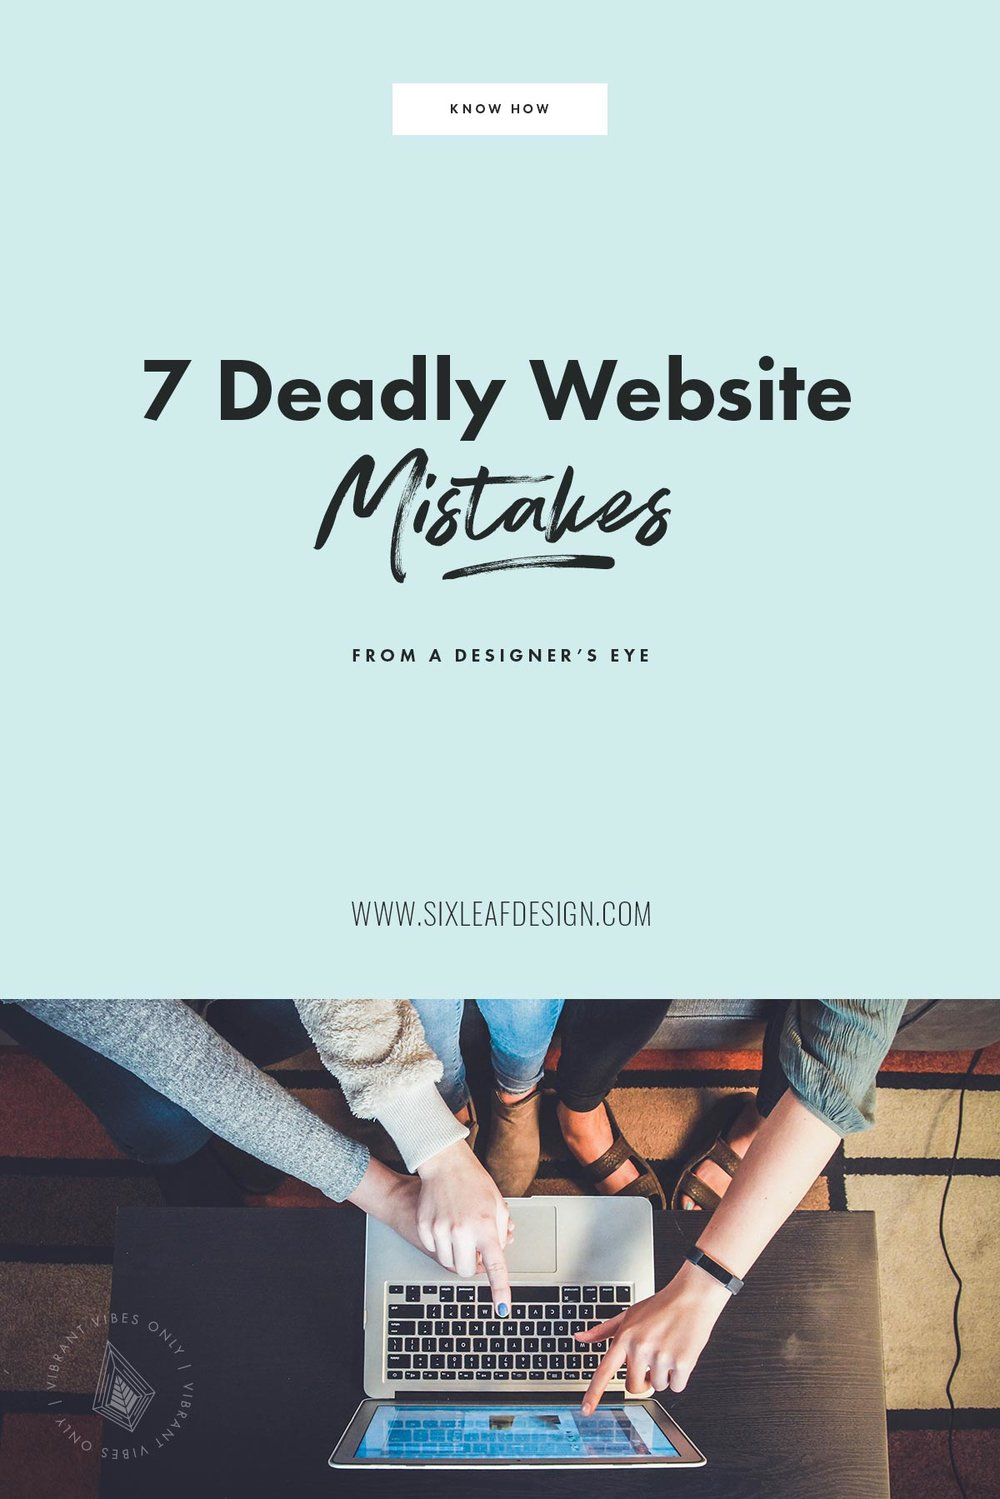 7 Deadly Website Mistakes From A Designer's Eye